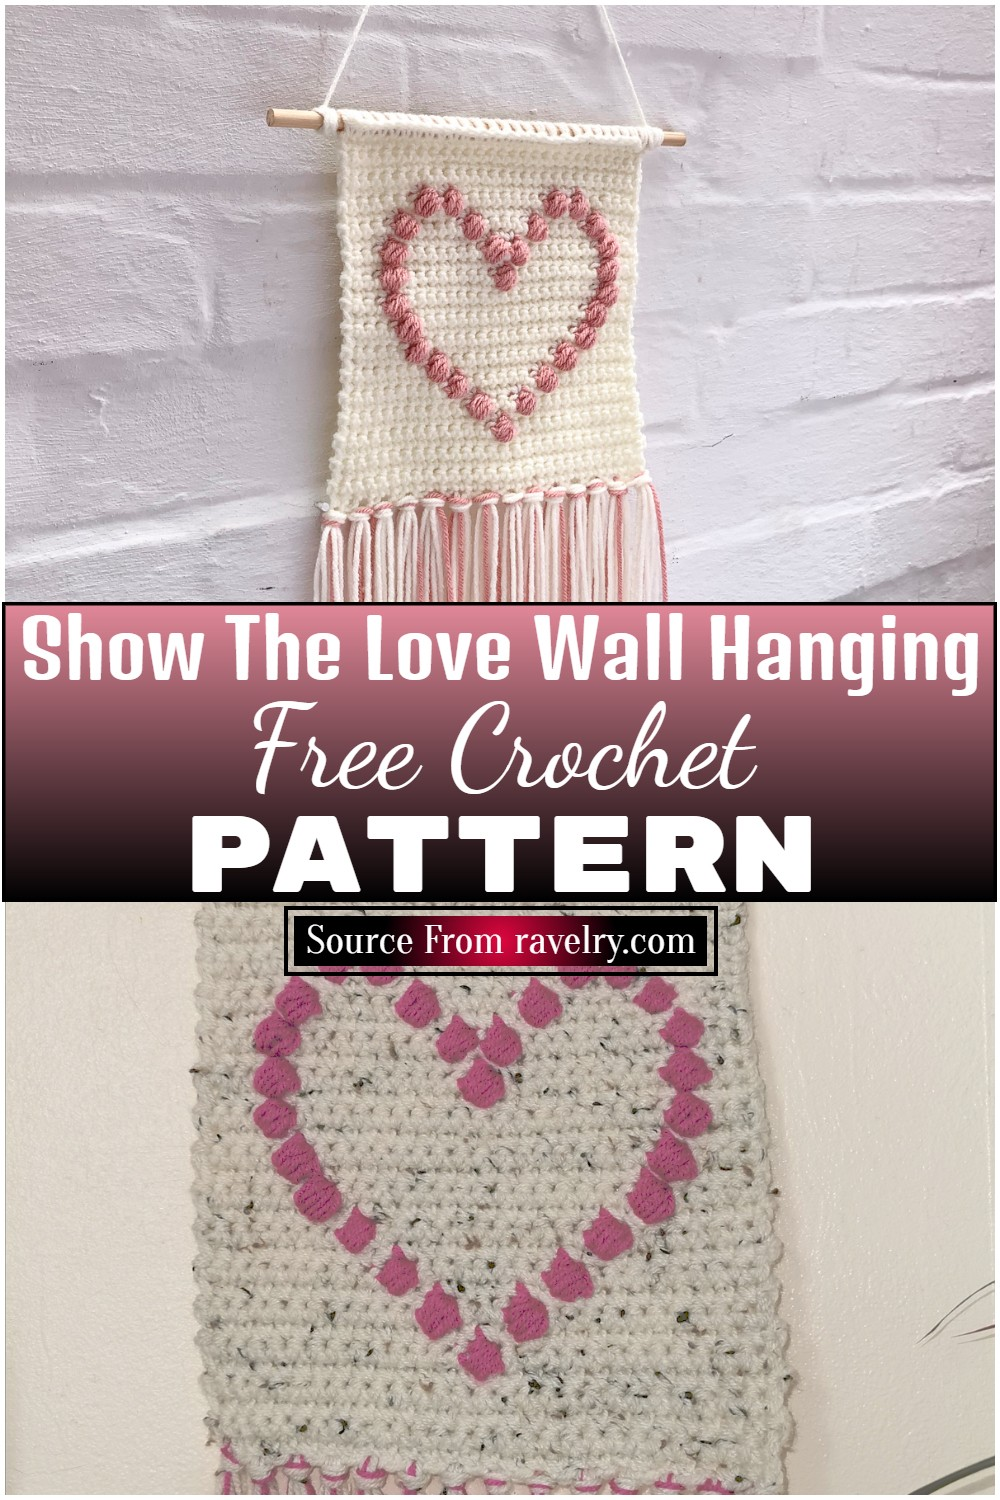 Free Crochet Show The Love Wall Hanging 1